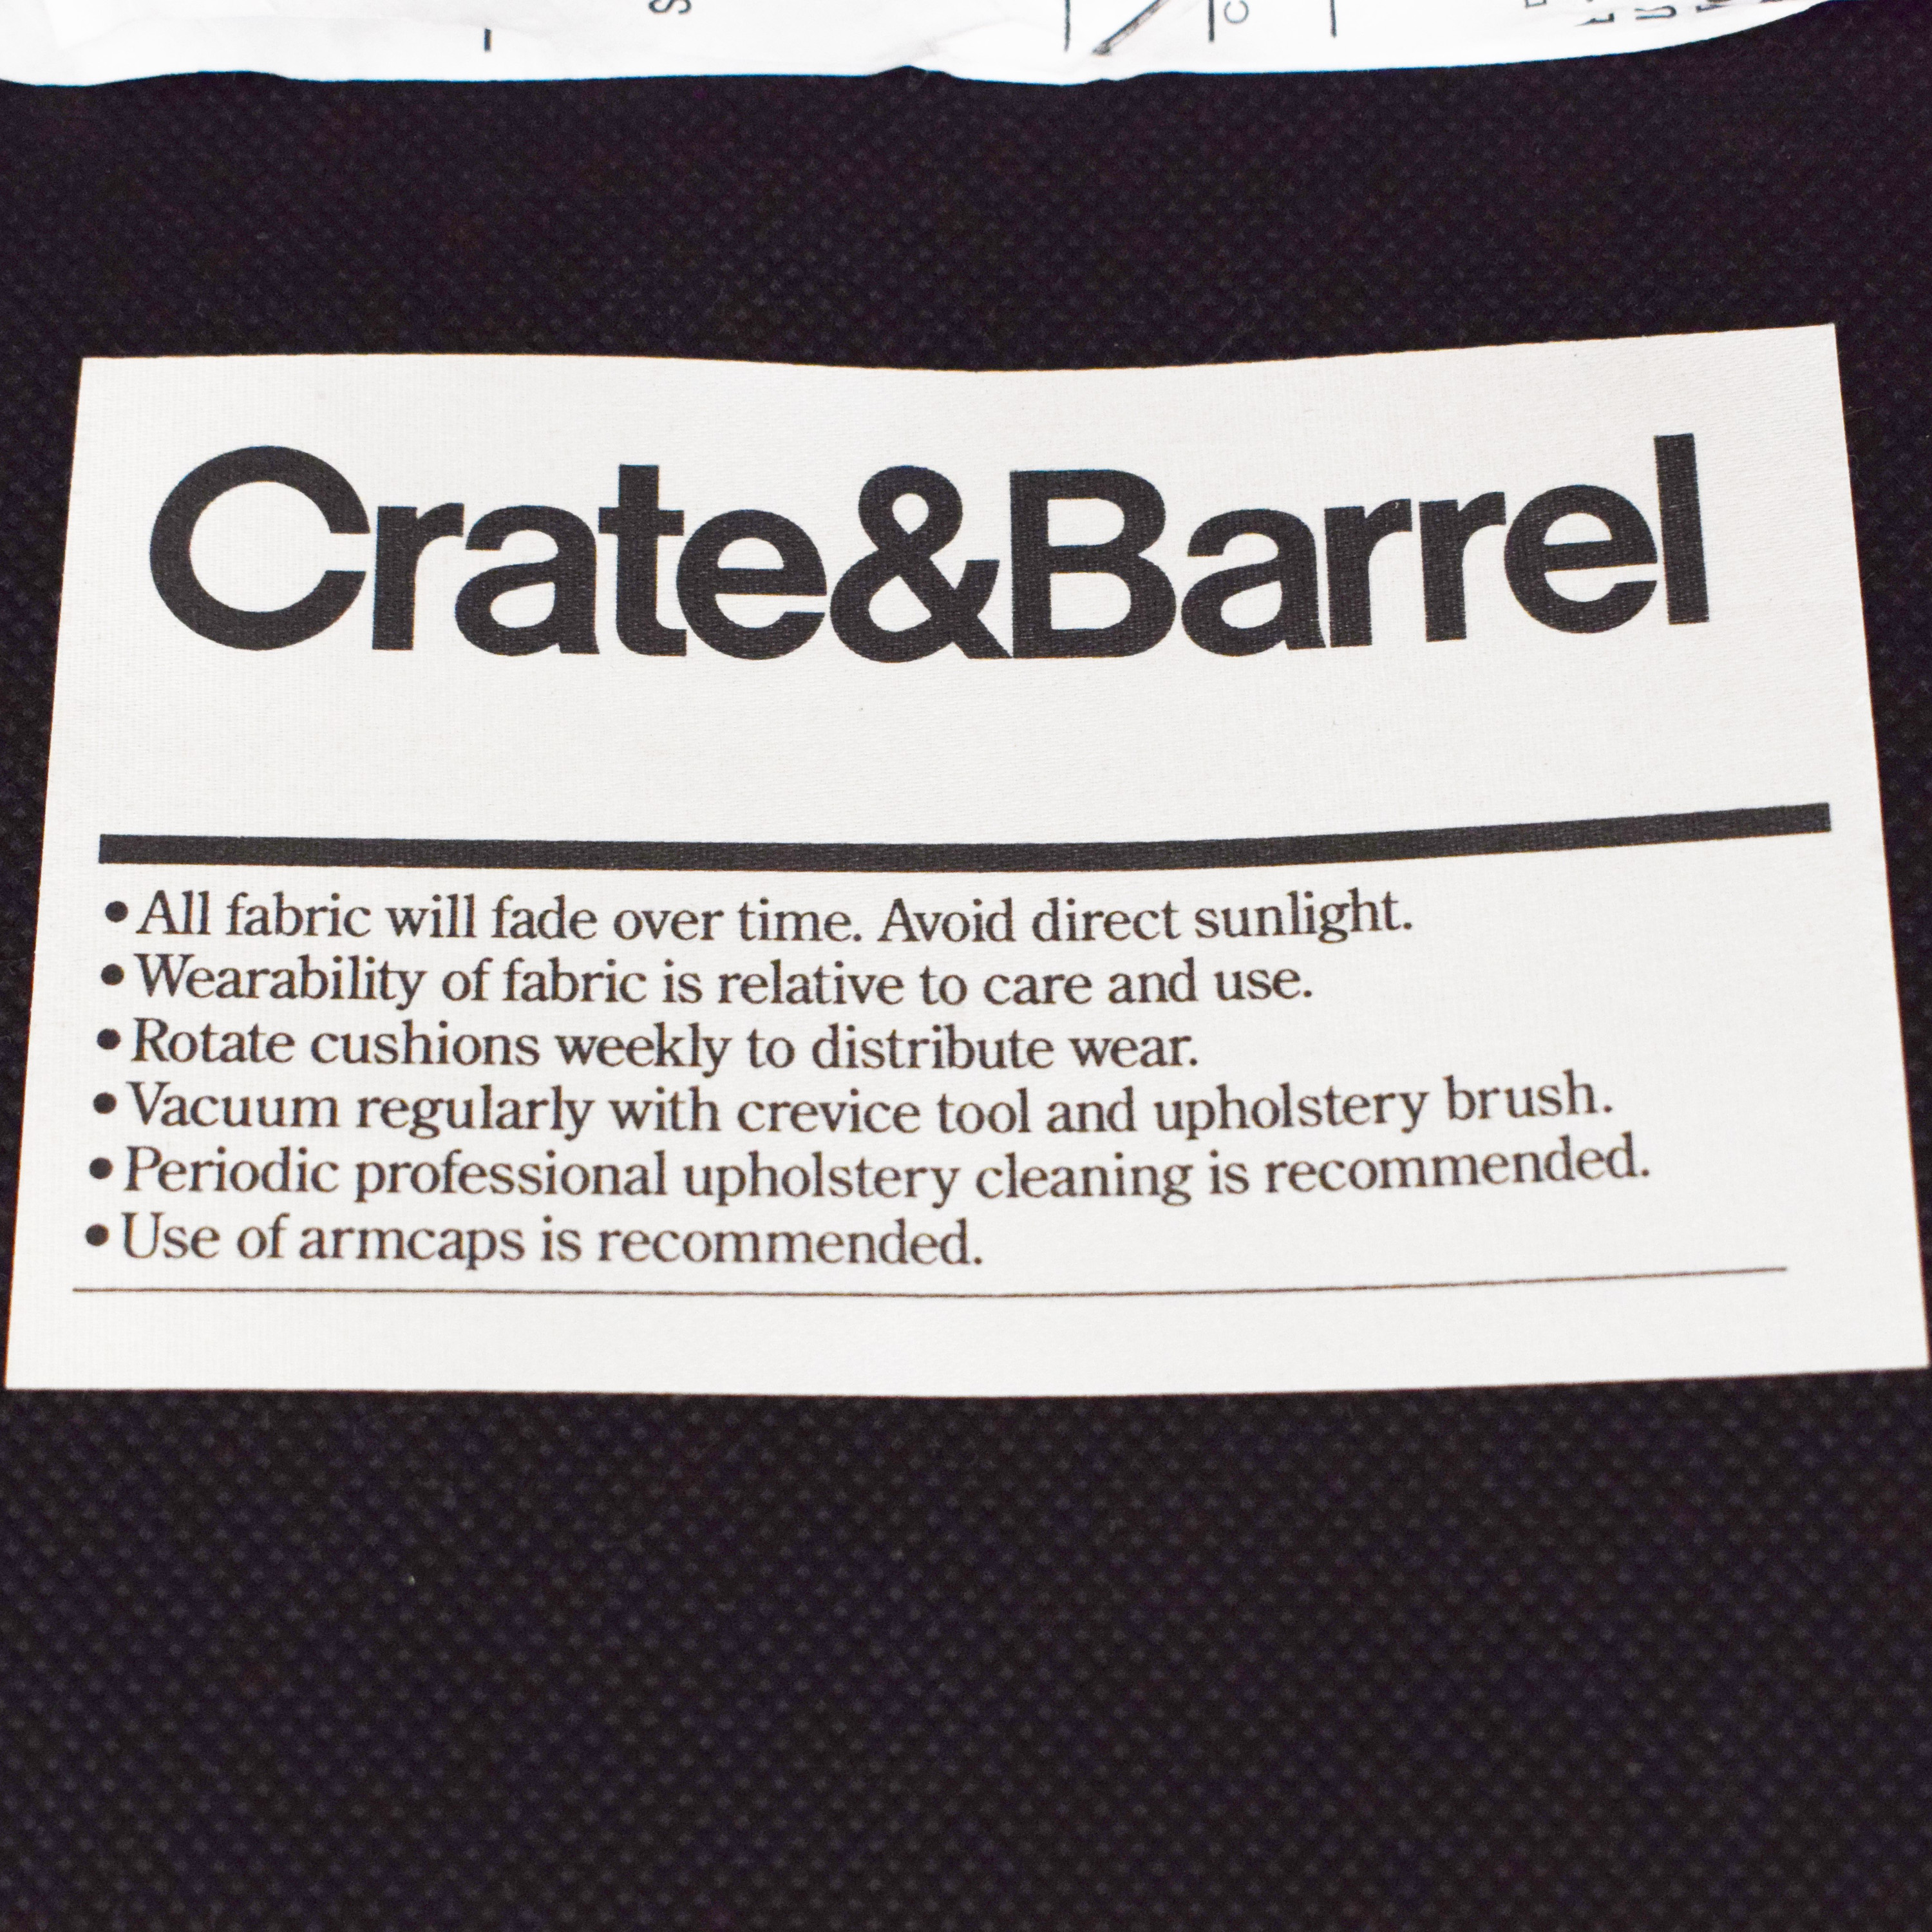 Crate & Barrel Crate & Barrel Lounge II Storage Ottoman with Casters on sale